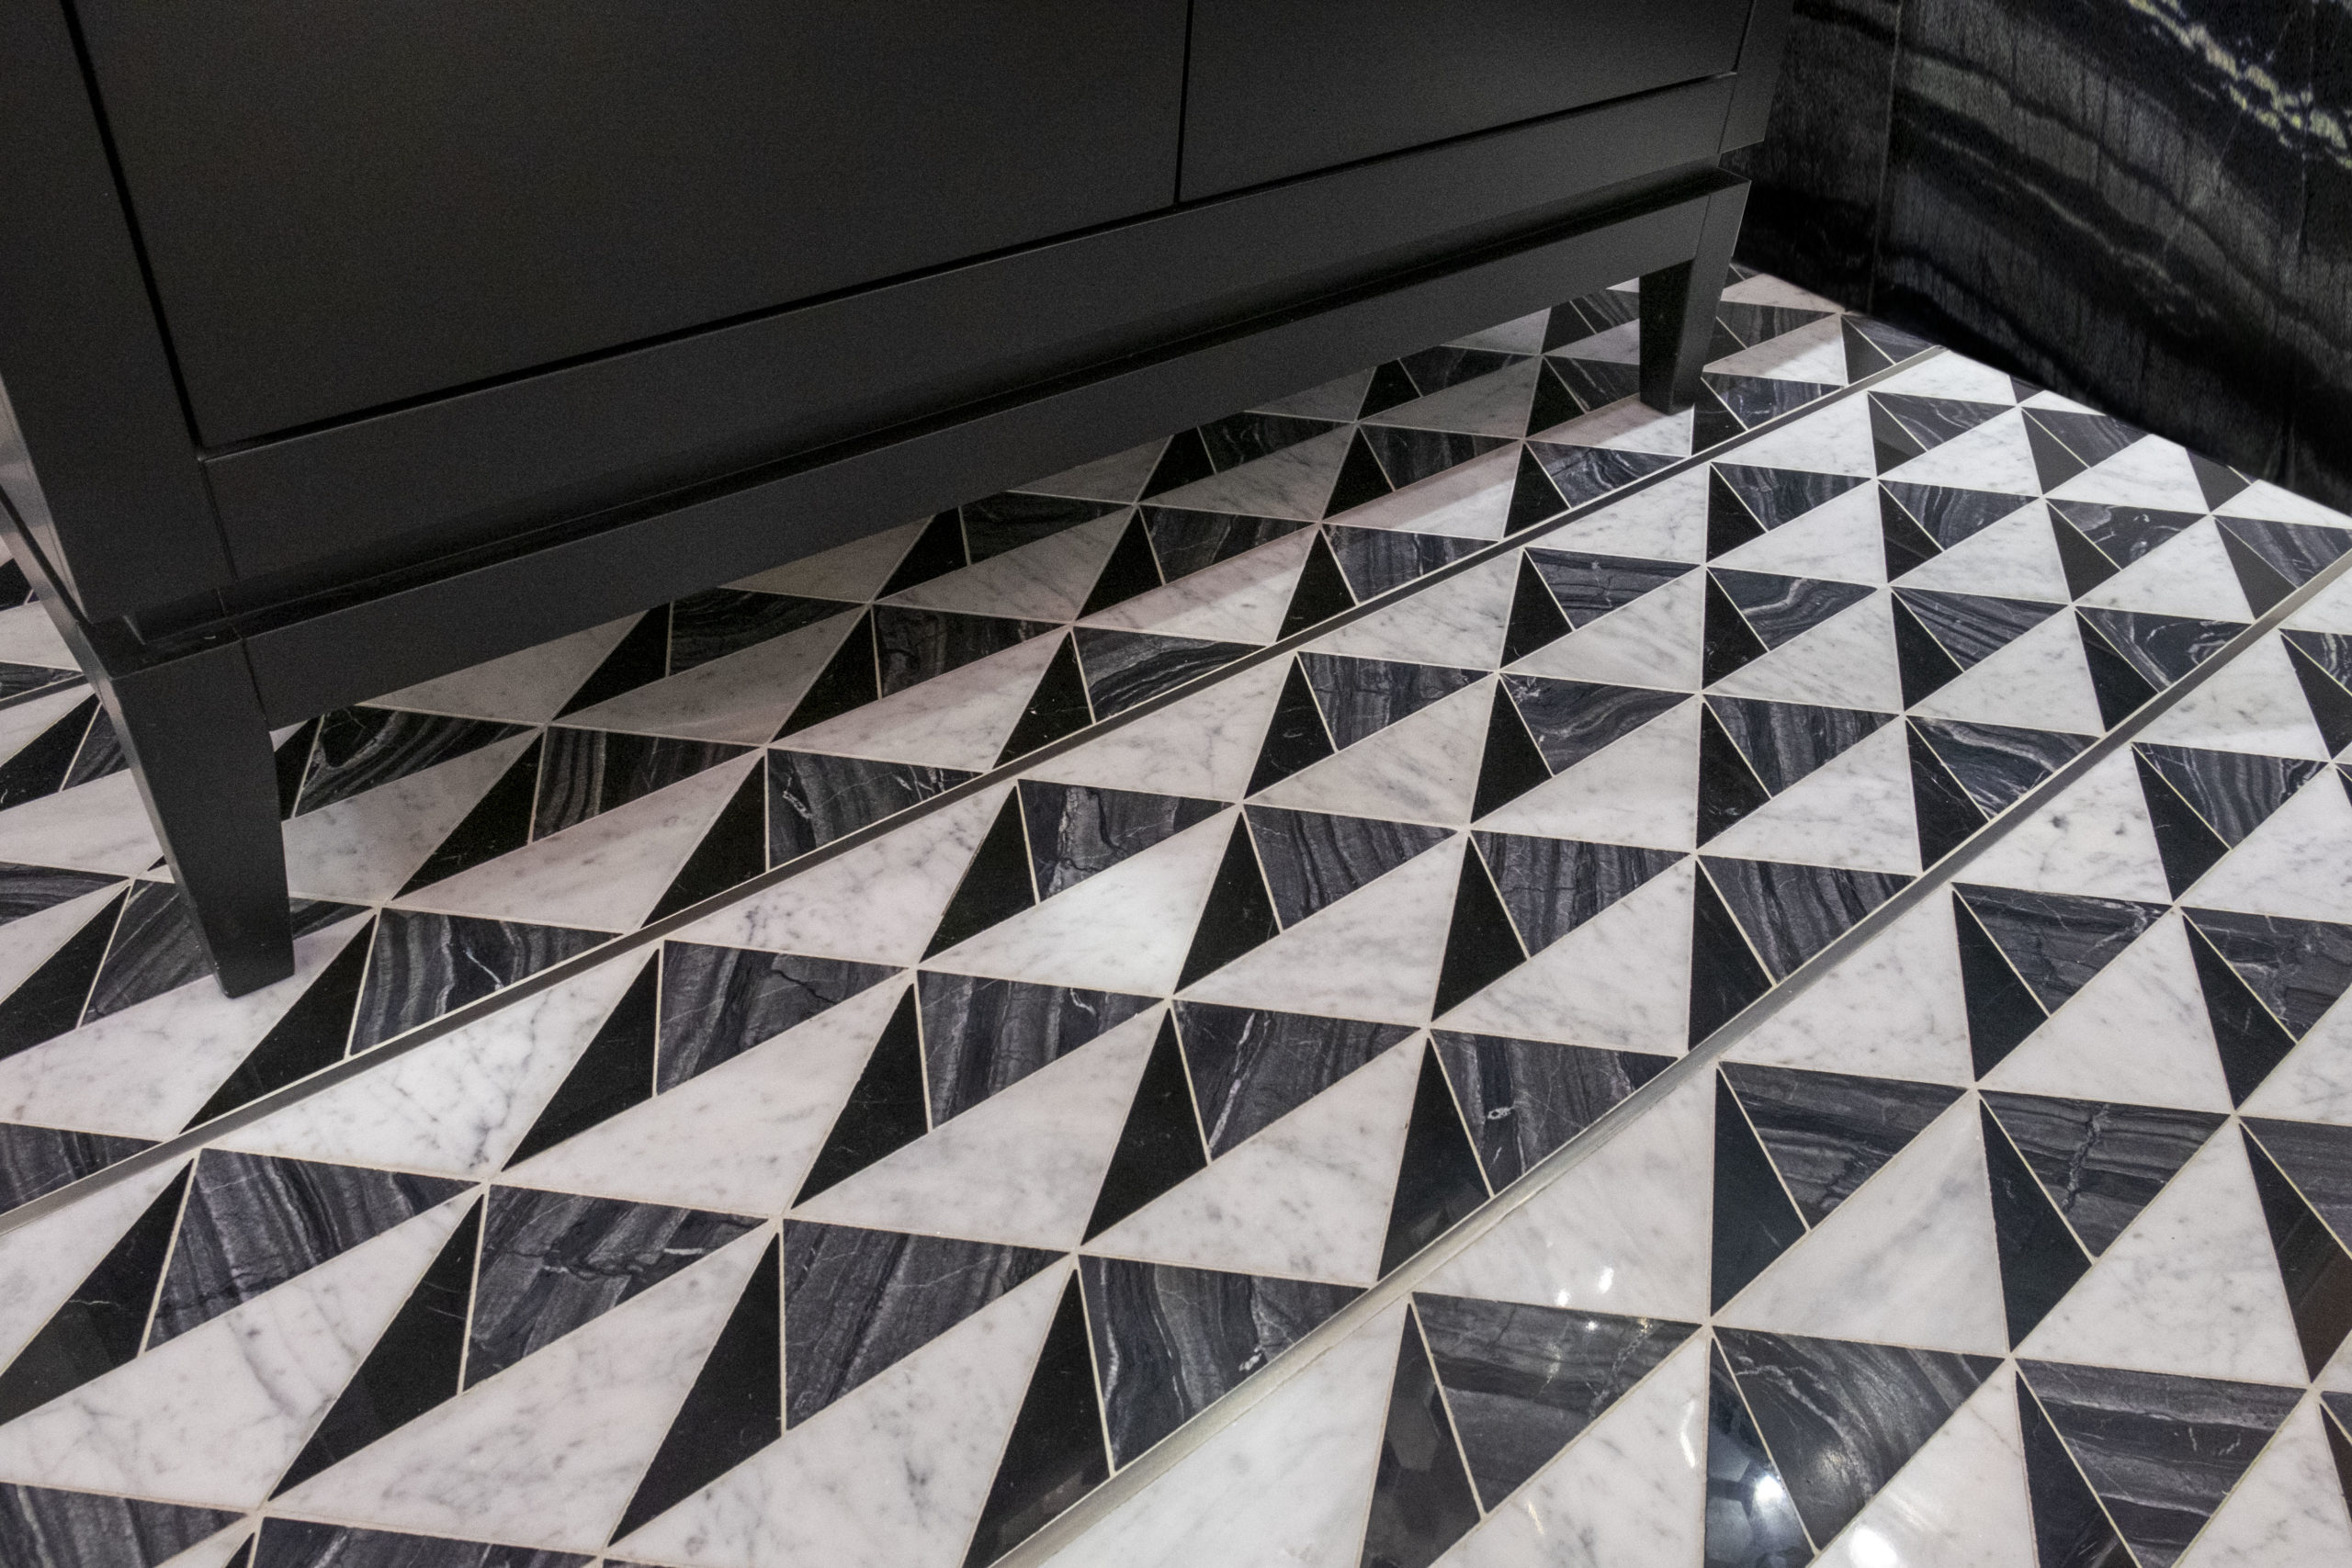 Precision Square Hepburn Stainless Steel and floor tile